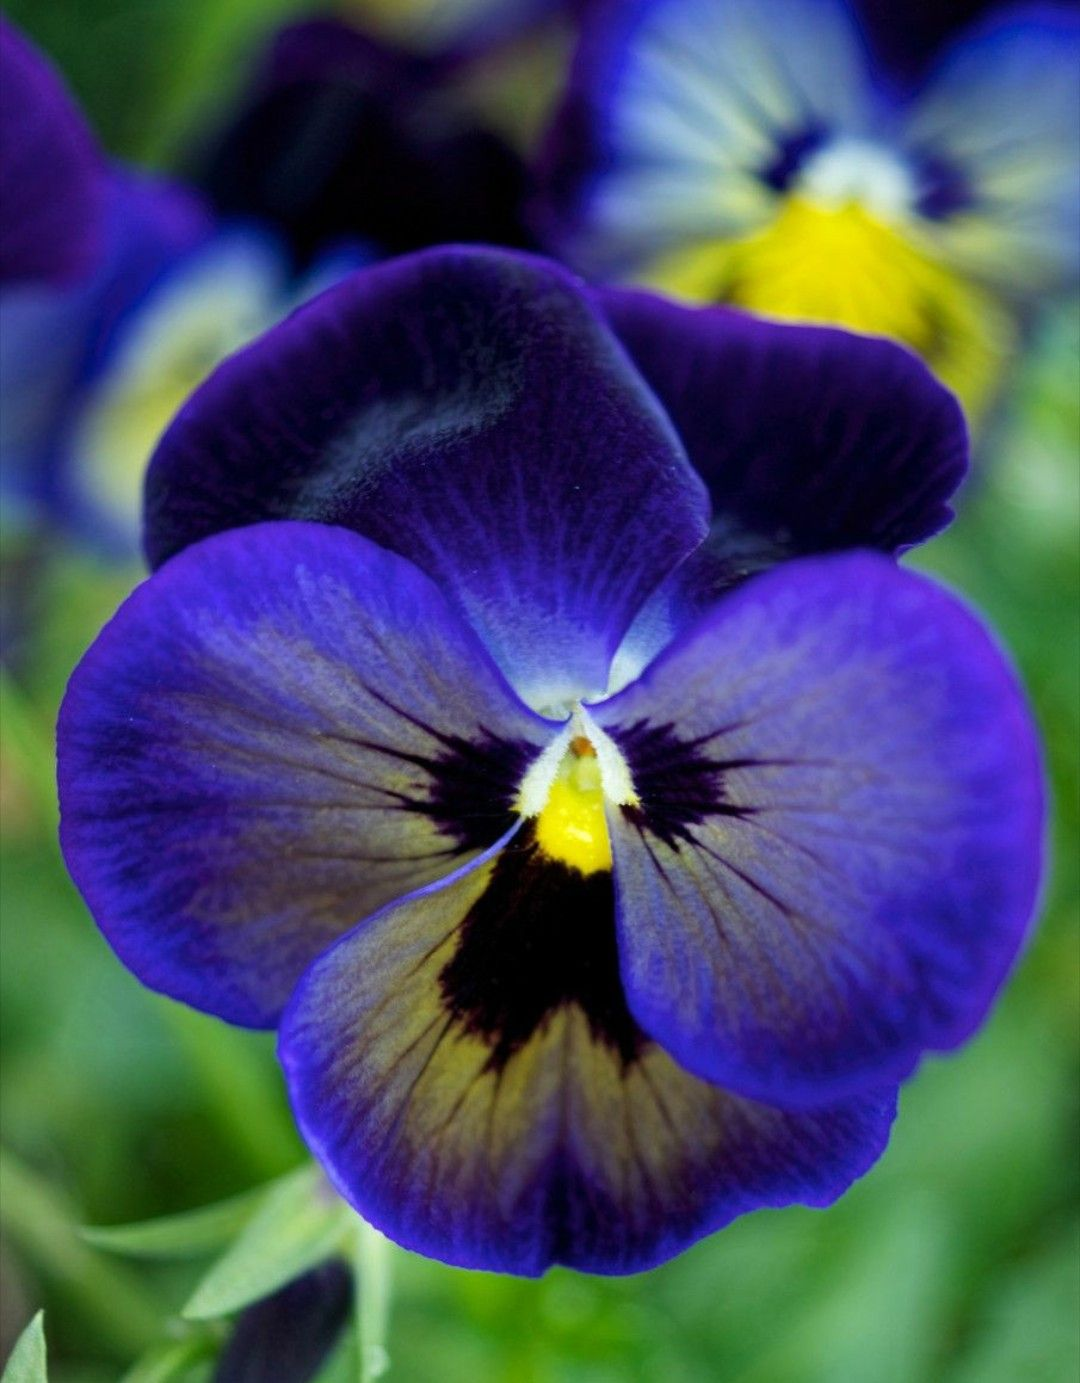 Pin By Viola Stefano On Fiori E Piante Belli Come Te Amore Mio Pansies Flowers Flower Seeds Pansies